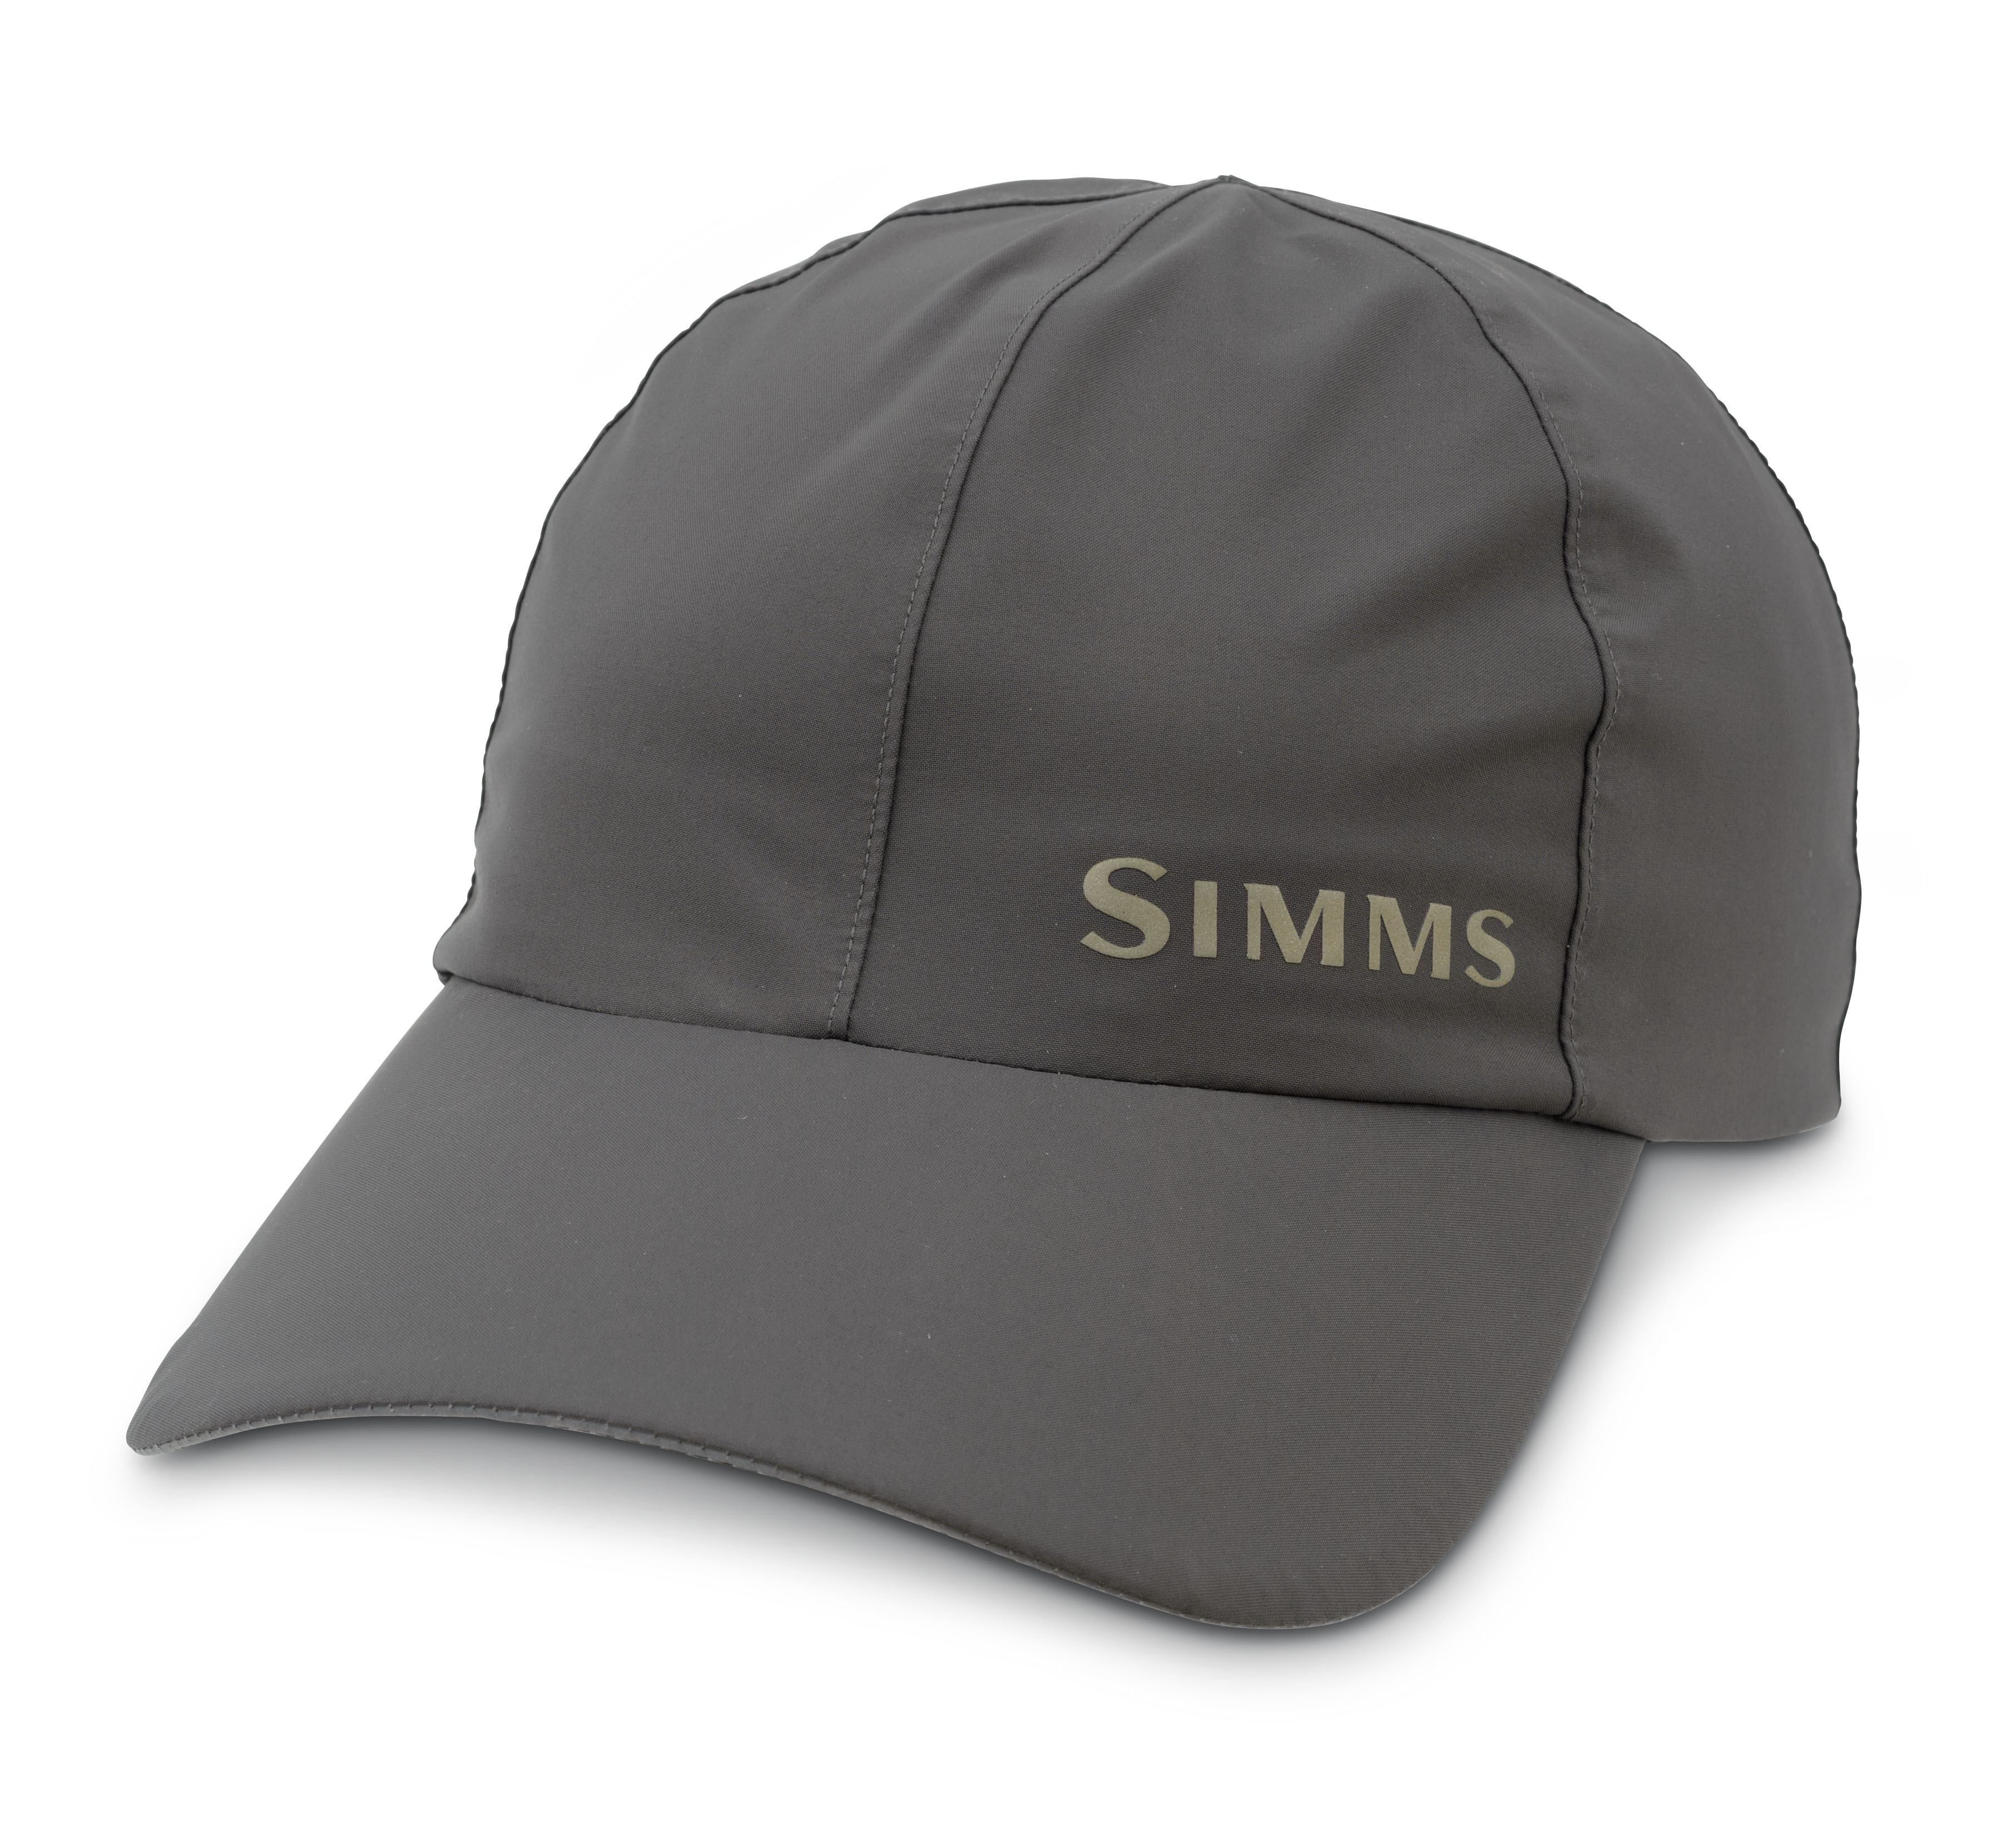 Simms G4 Caps – Glasgow Angling Centre